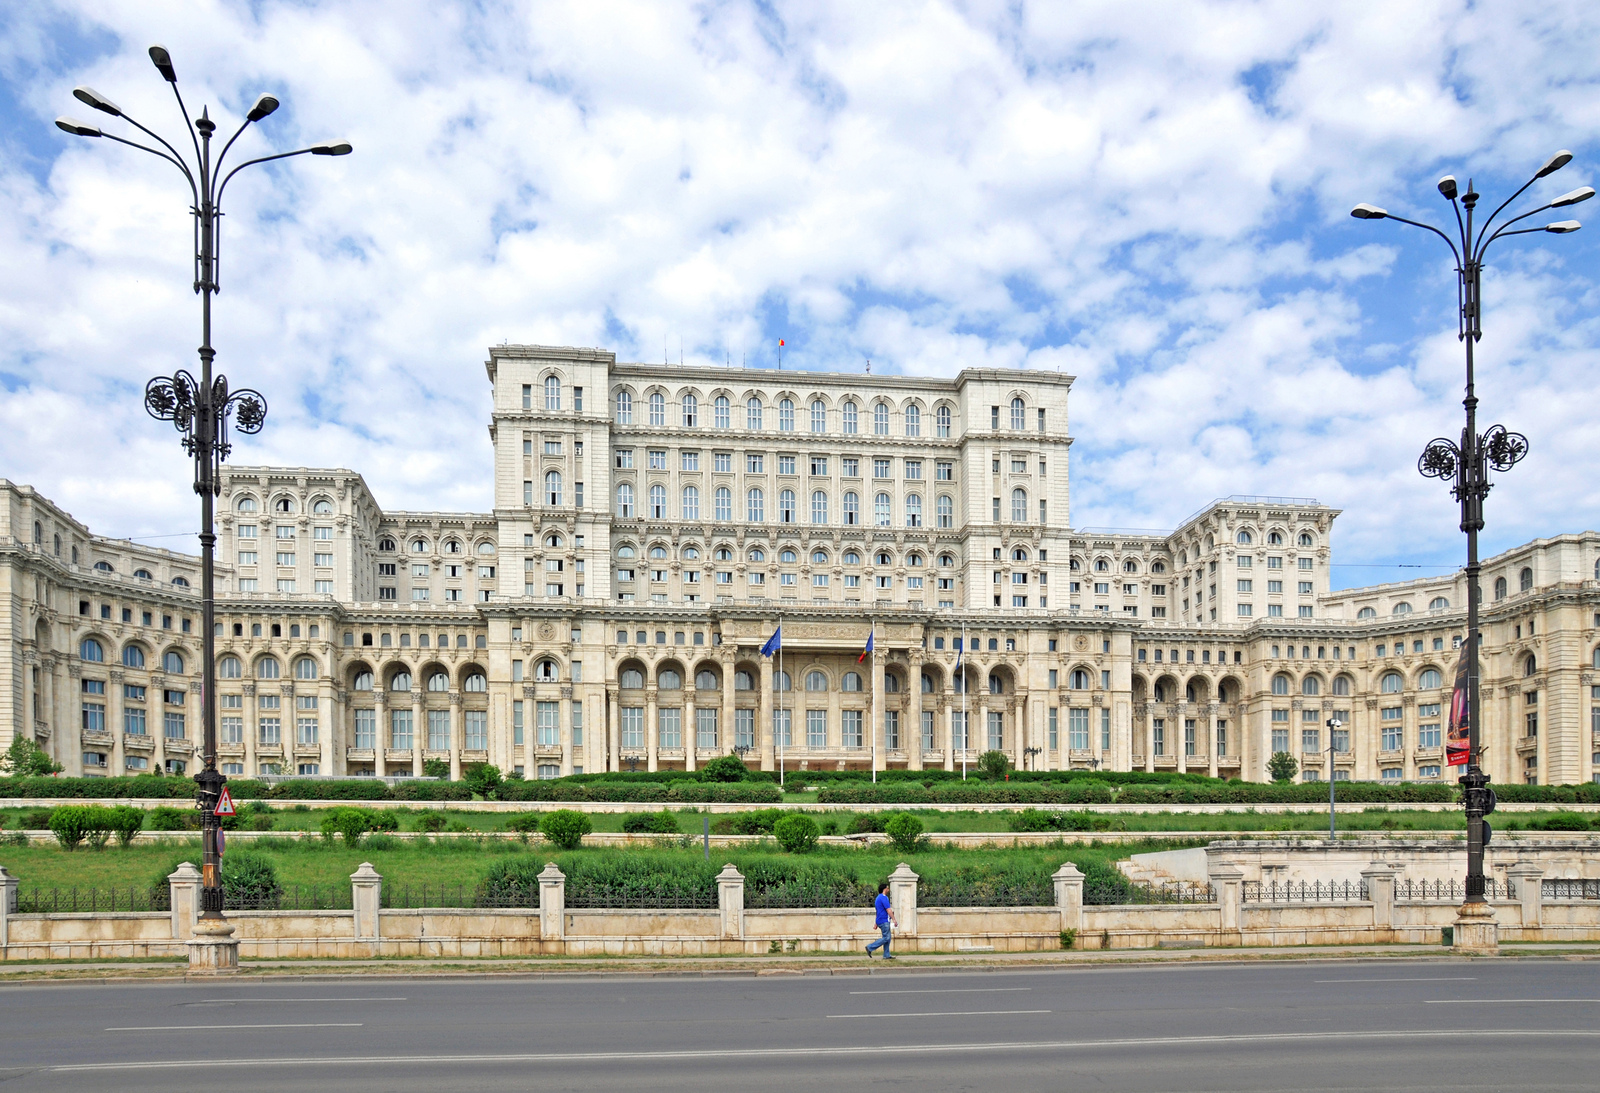 the world's largest administrative building